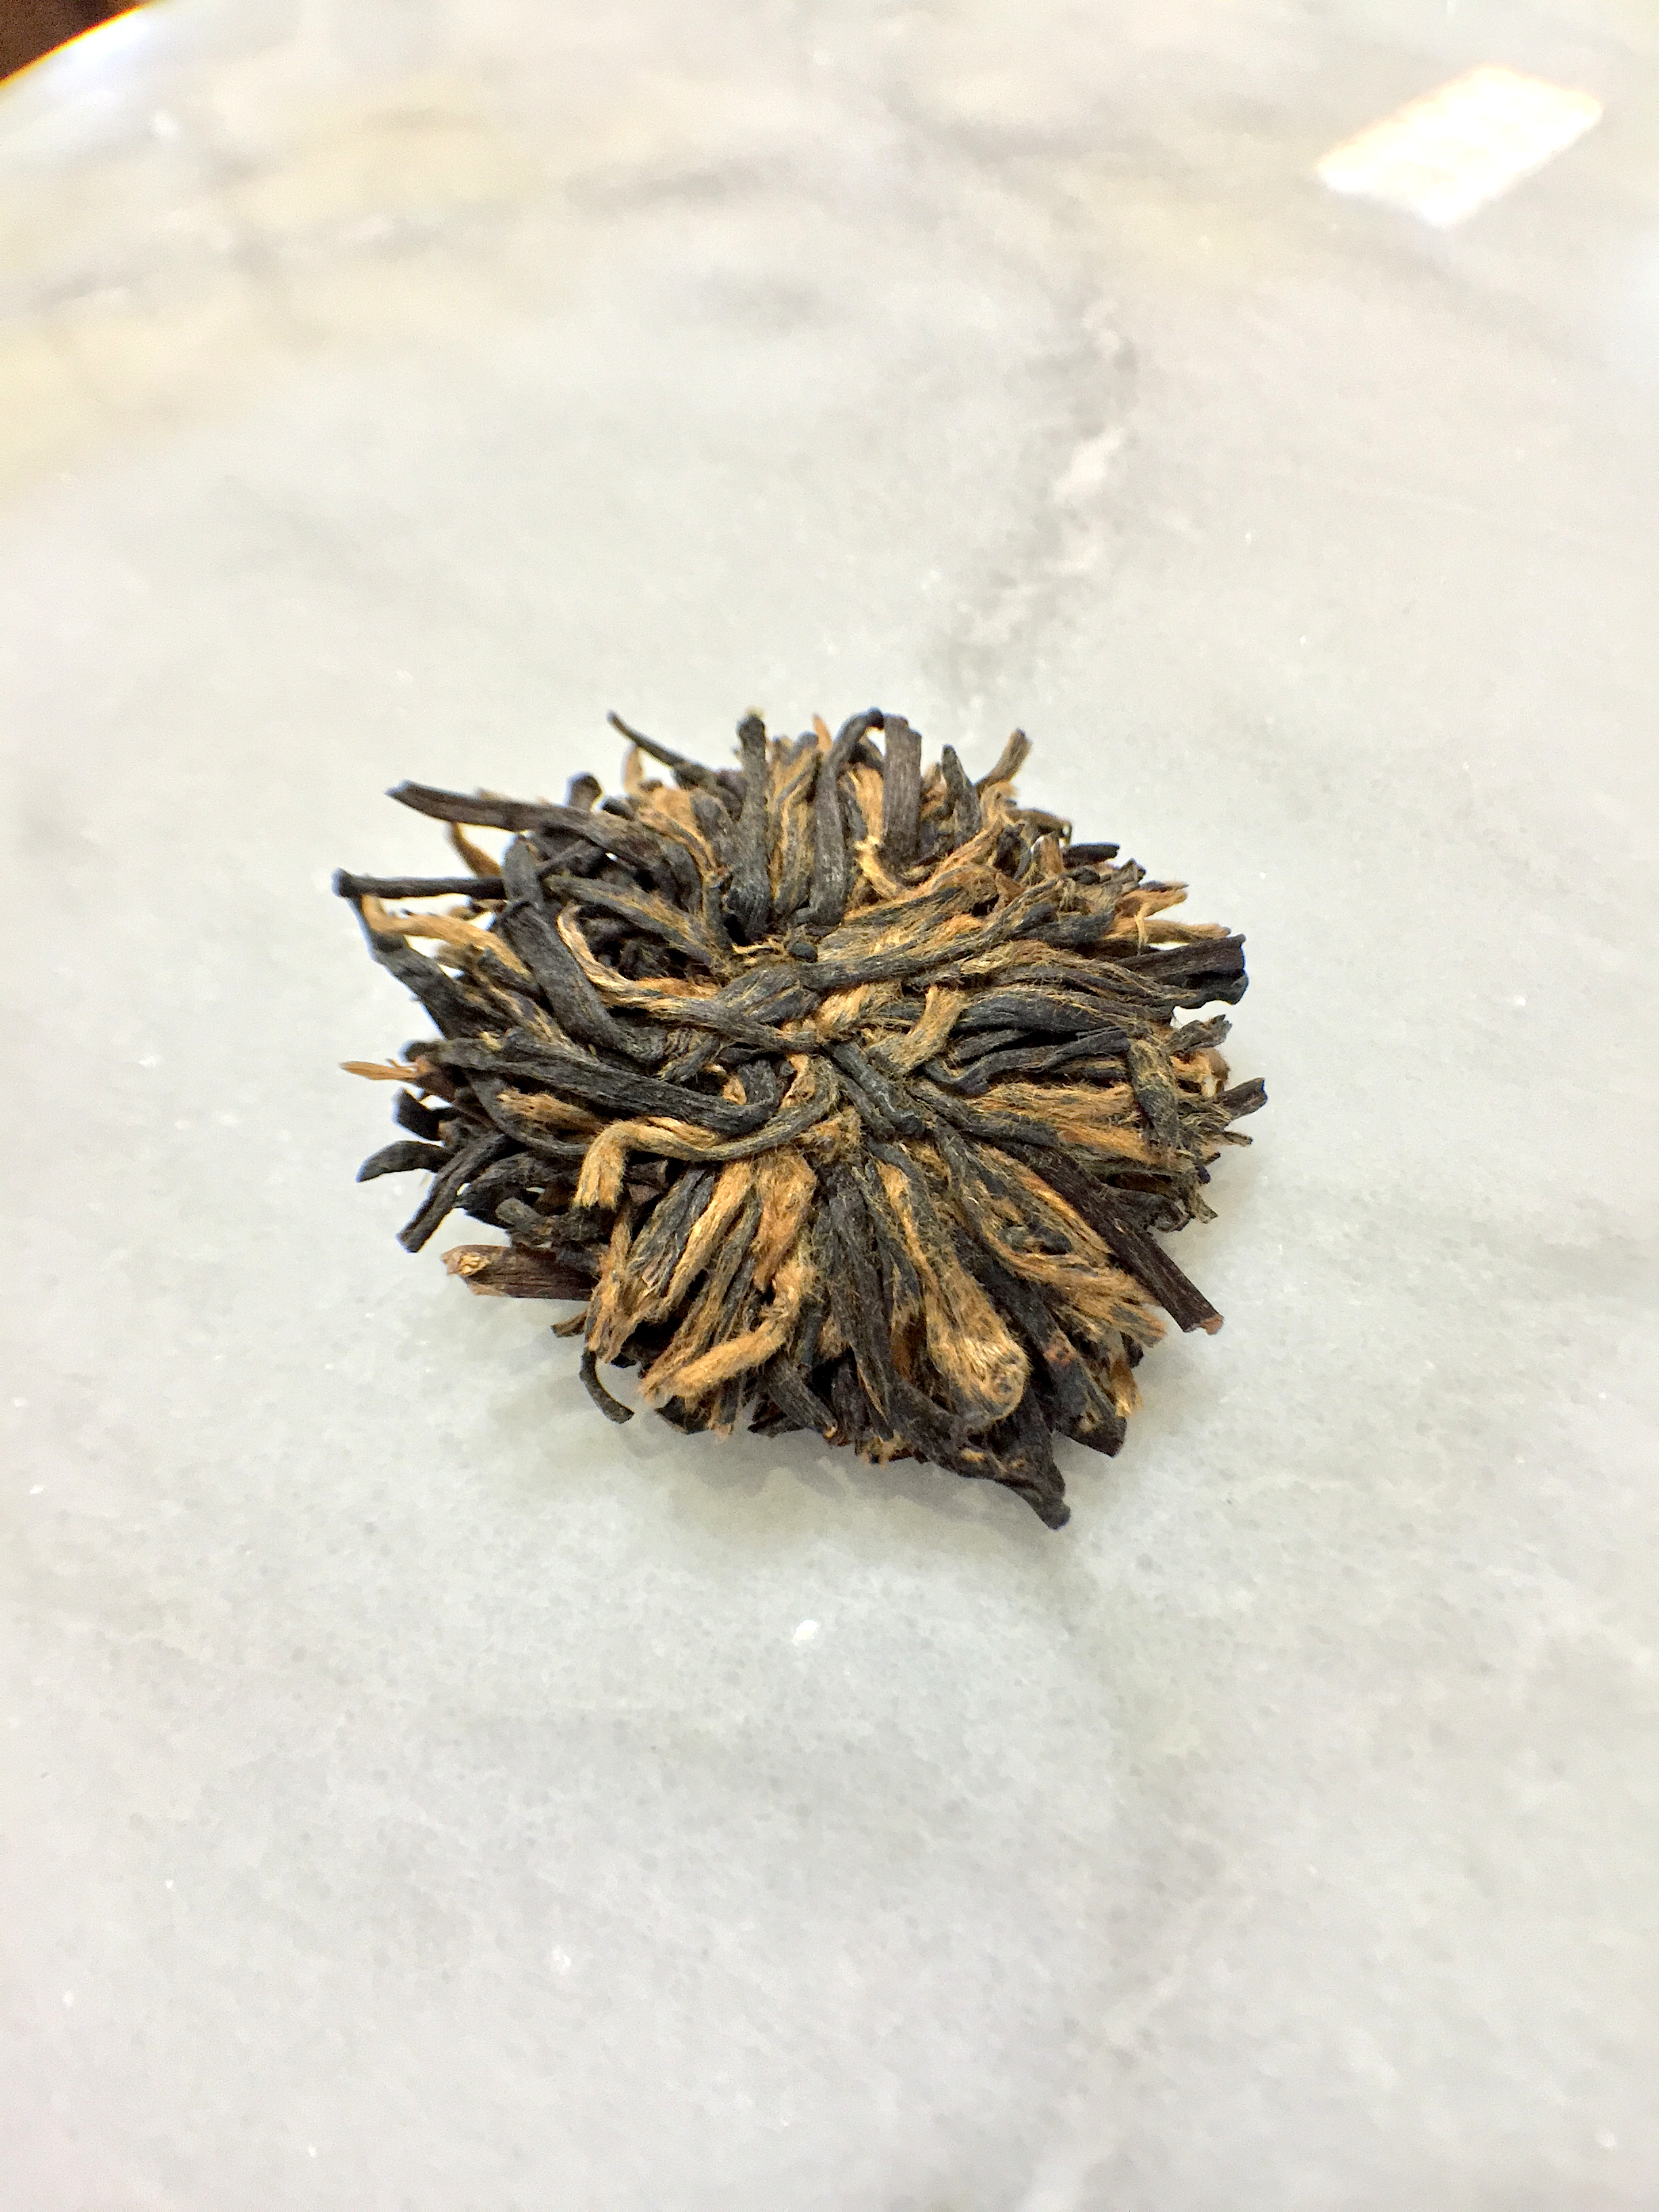 Black Peony (Art of Tea): loose leaf by Jocilyn Mors is licensed under a Creative Commons Attribution-ShareAlike 4.0 International License.